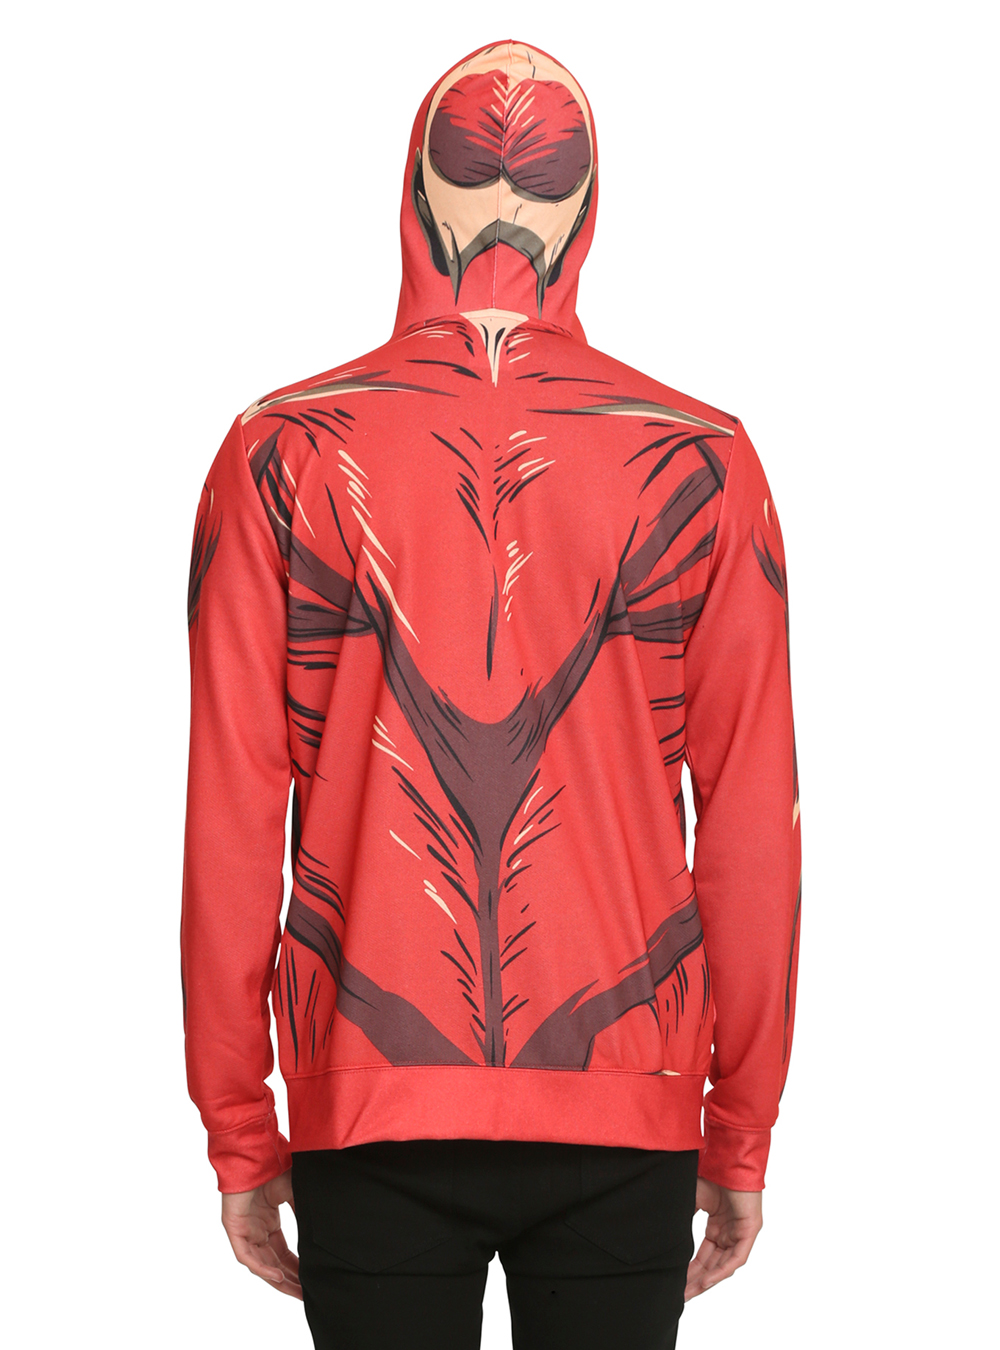 Transform into the Colossal Titan with This New Attack on Titan Hoodie 3